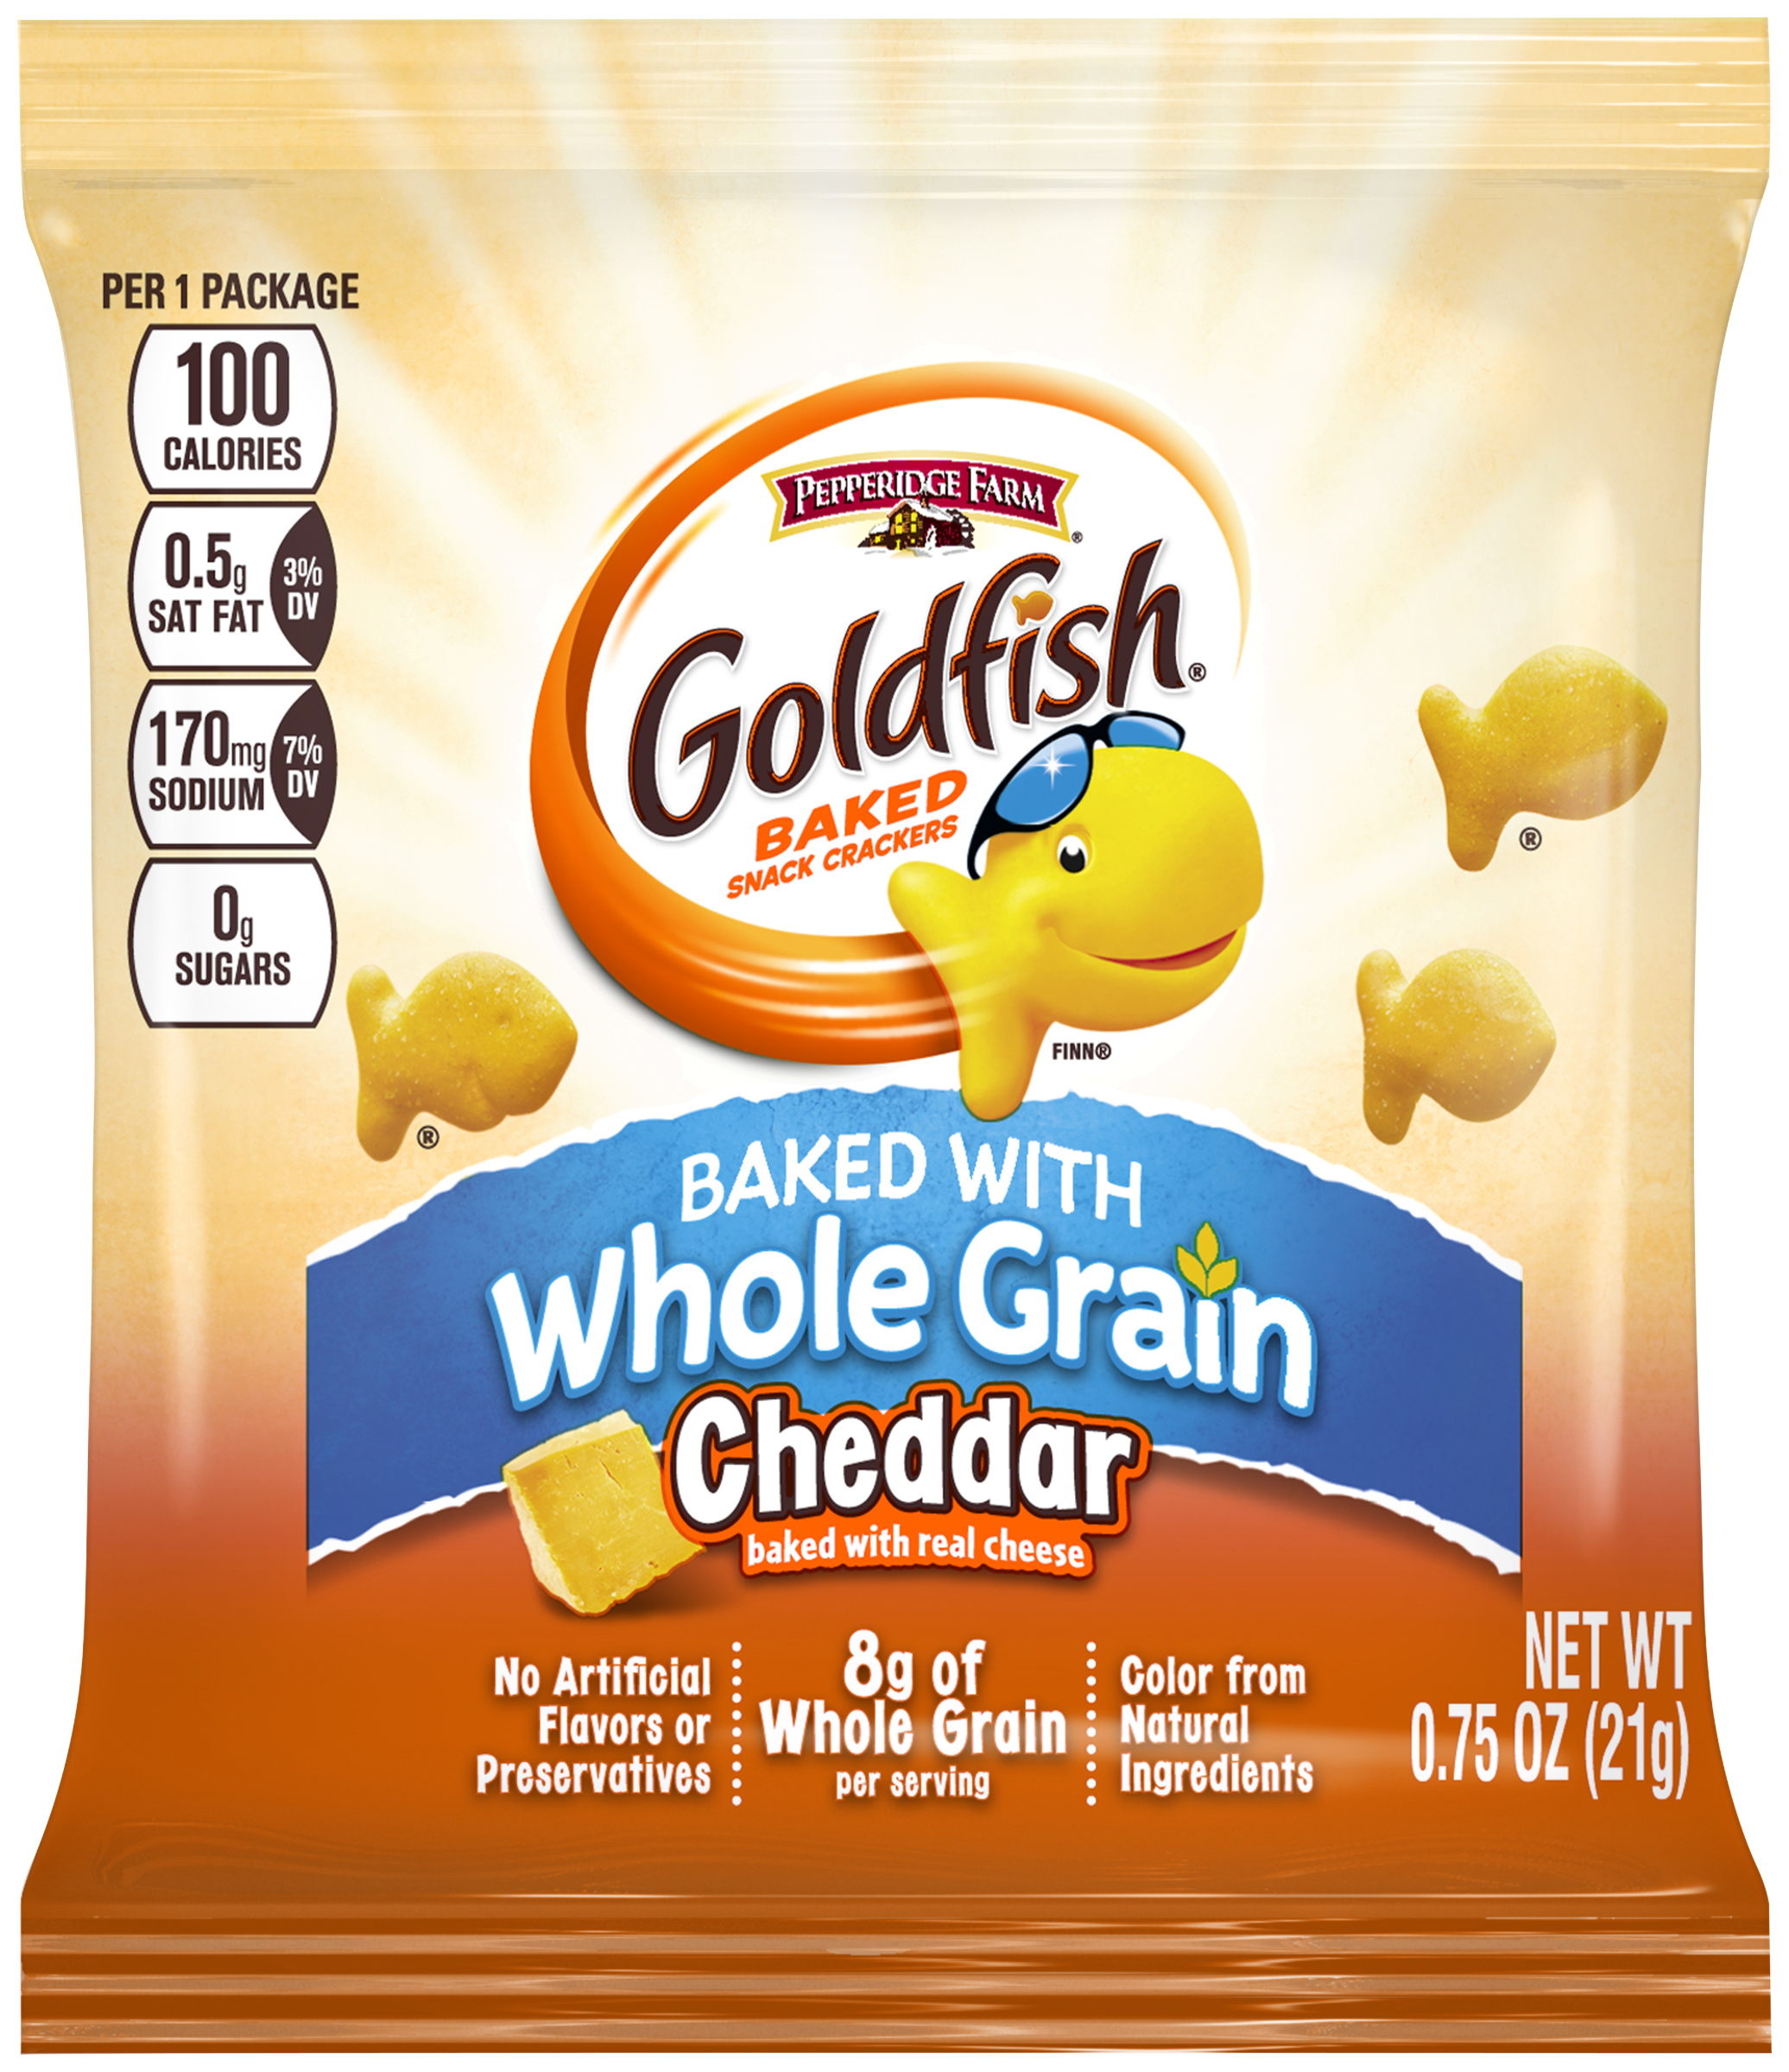 CHEDDAR GOLDFISH® MADE WITH WHOLE GRAIN